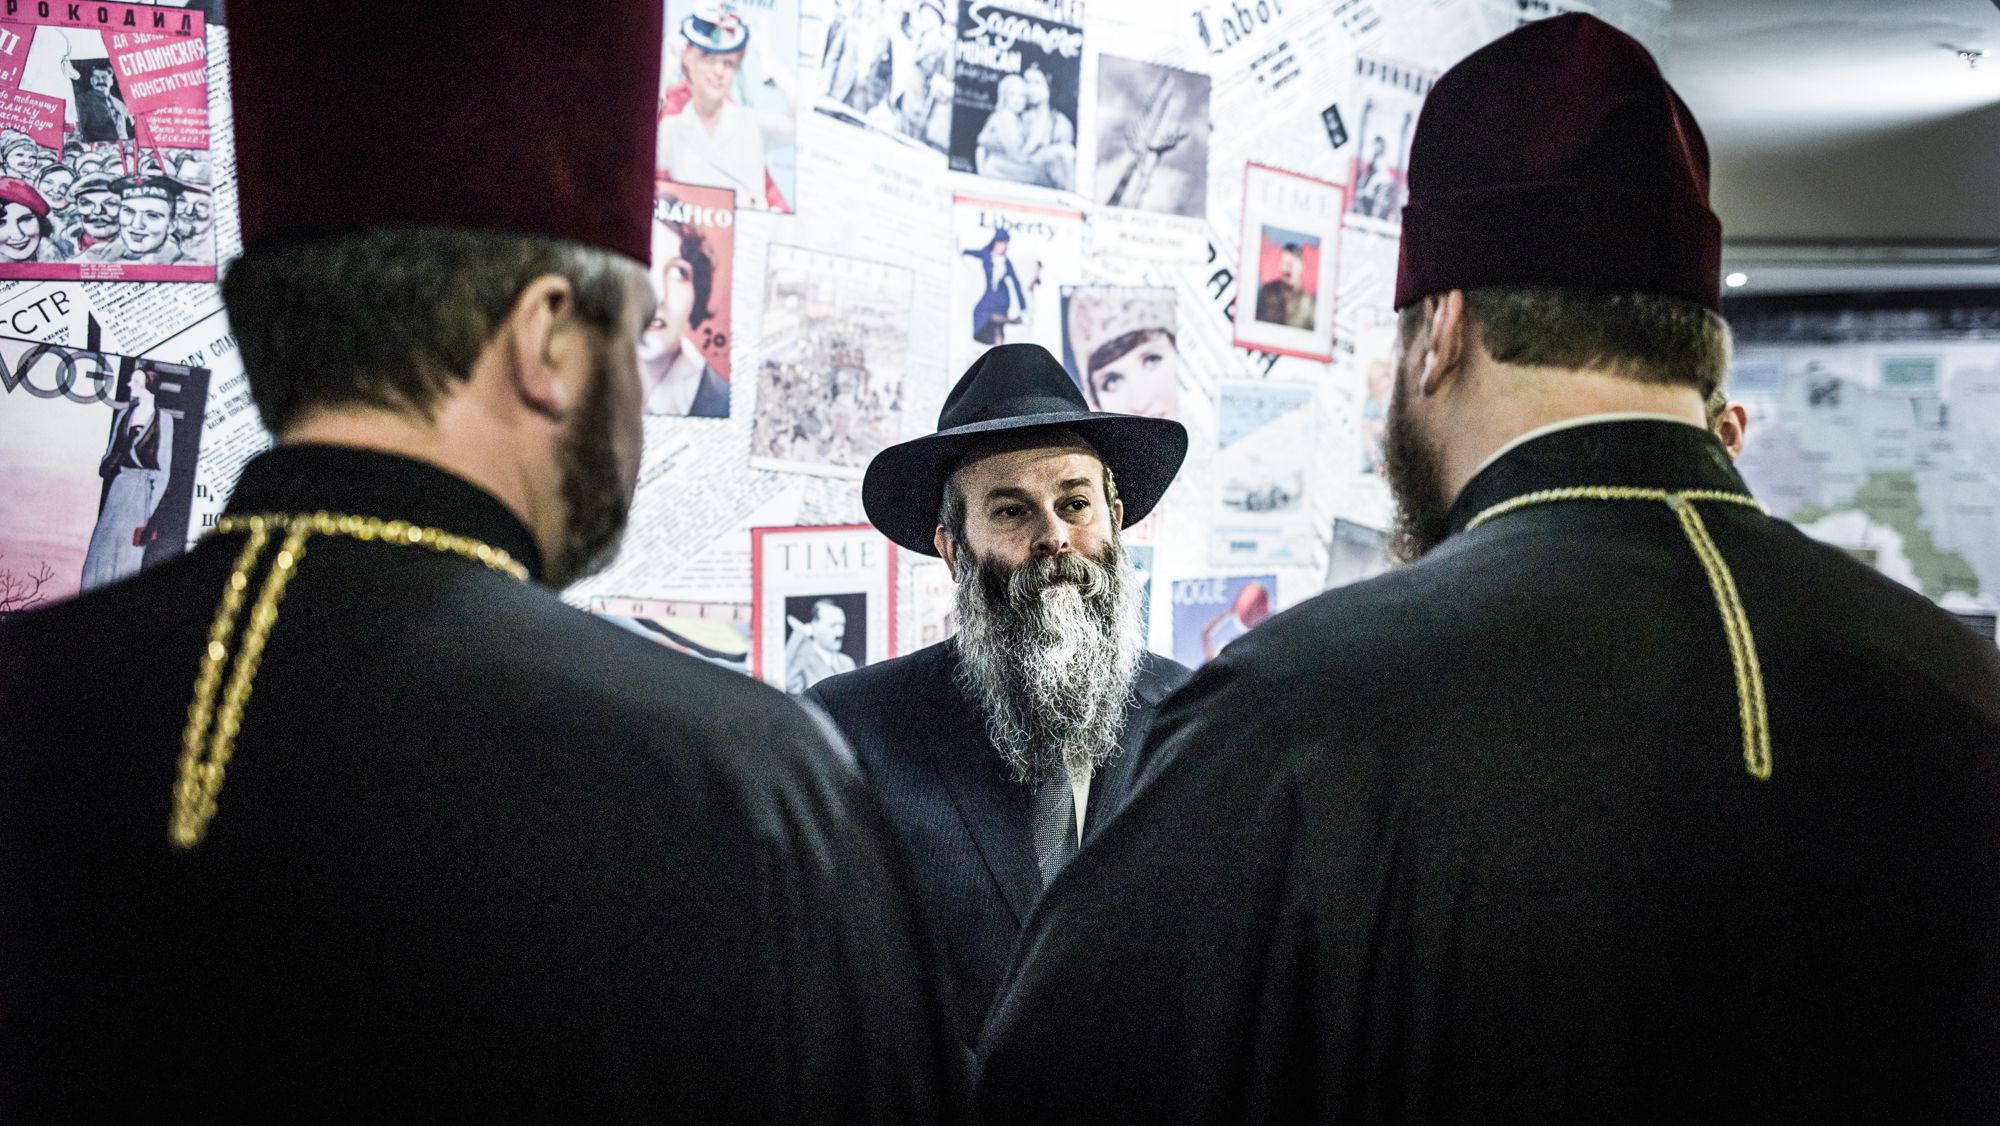 Rabbi Shmuel Kaminezki is hosting other religious leaders at Holocaust Remembrance day events. Majority of the population in Dnipropetrovsk, an industrial city of over 1 million people, belongs to one of the branches of the Orthodox Christianity.